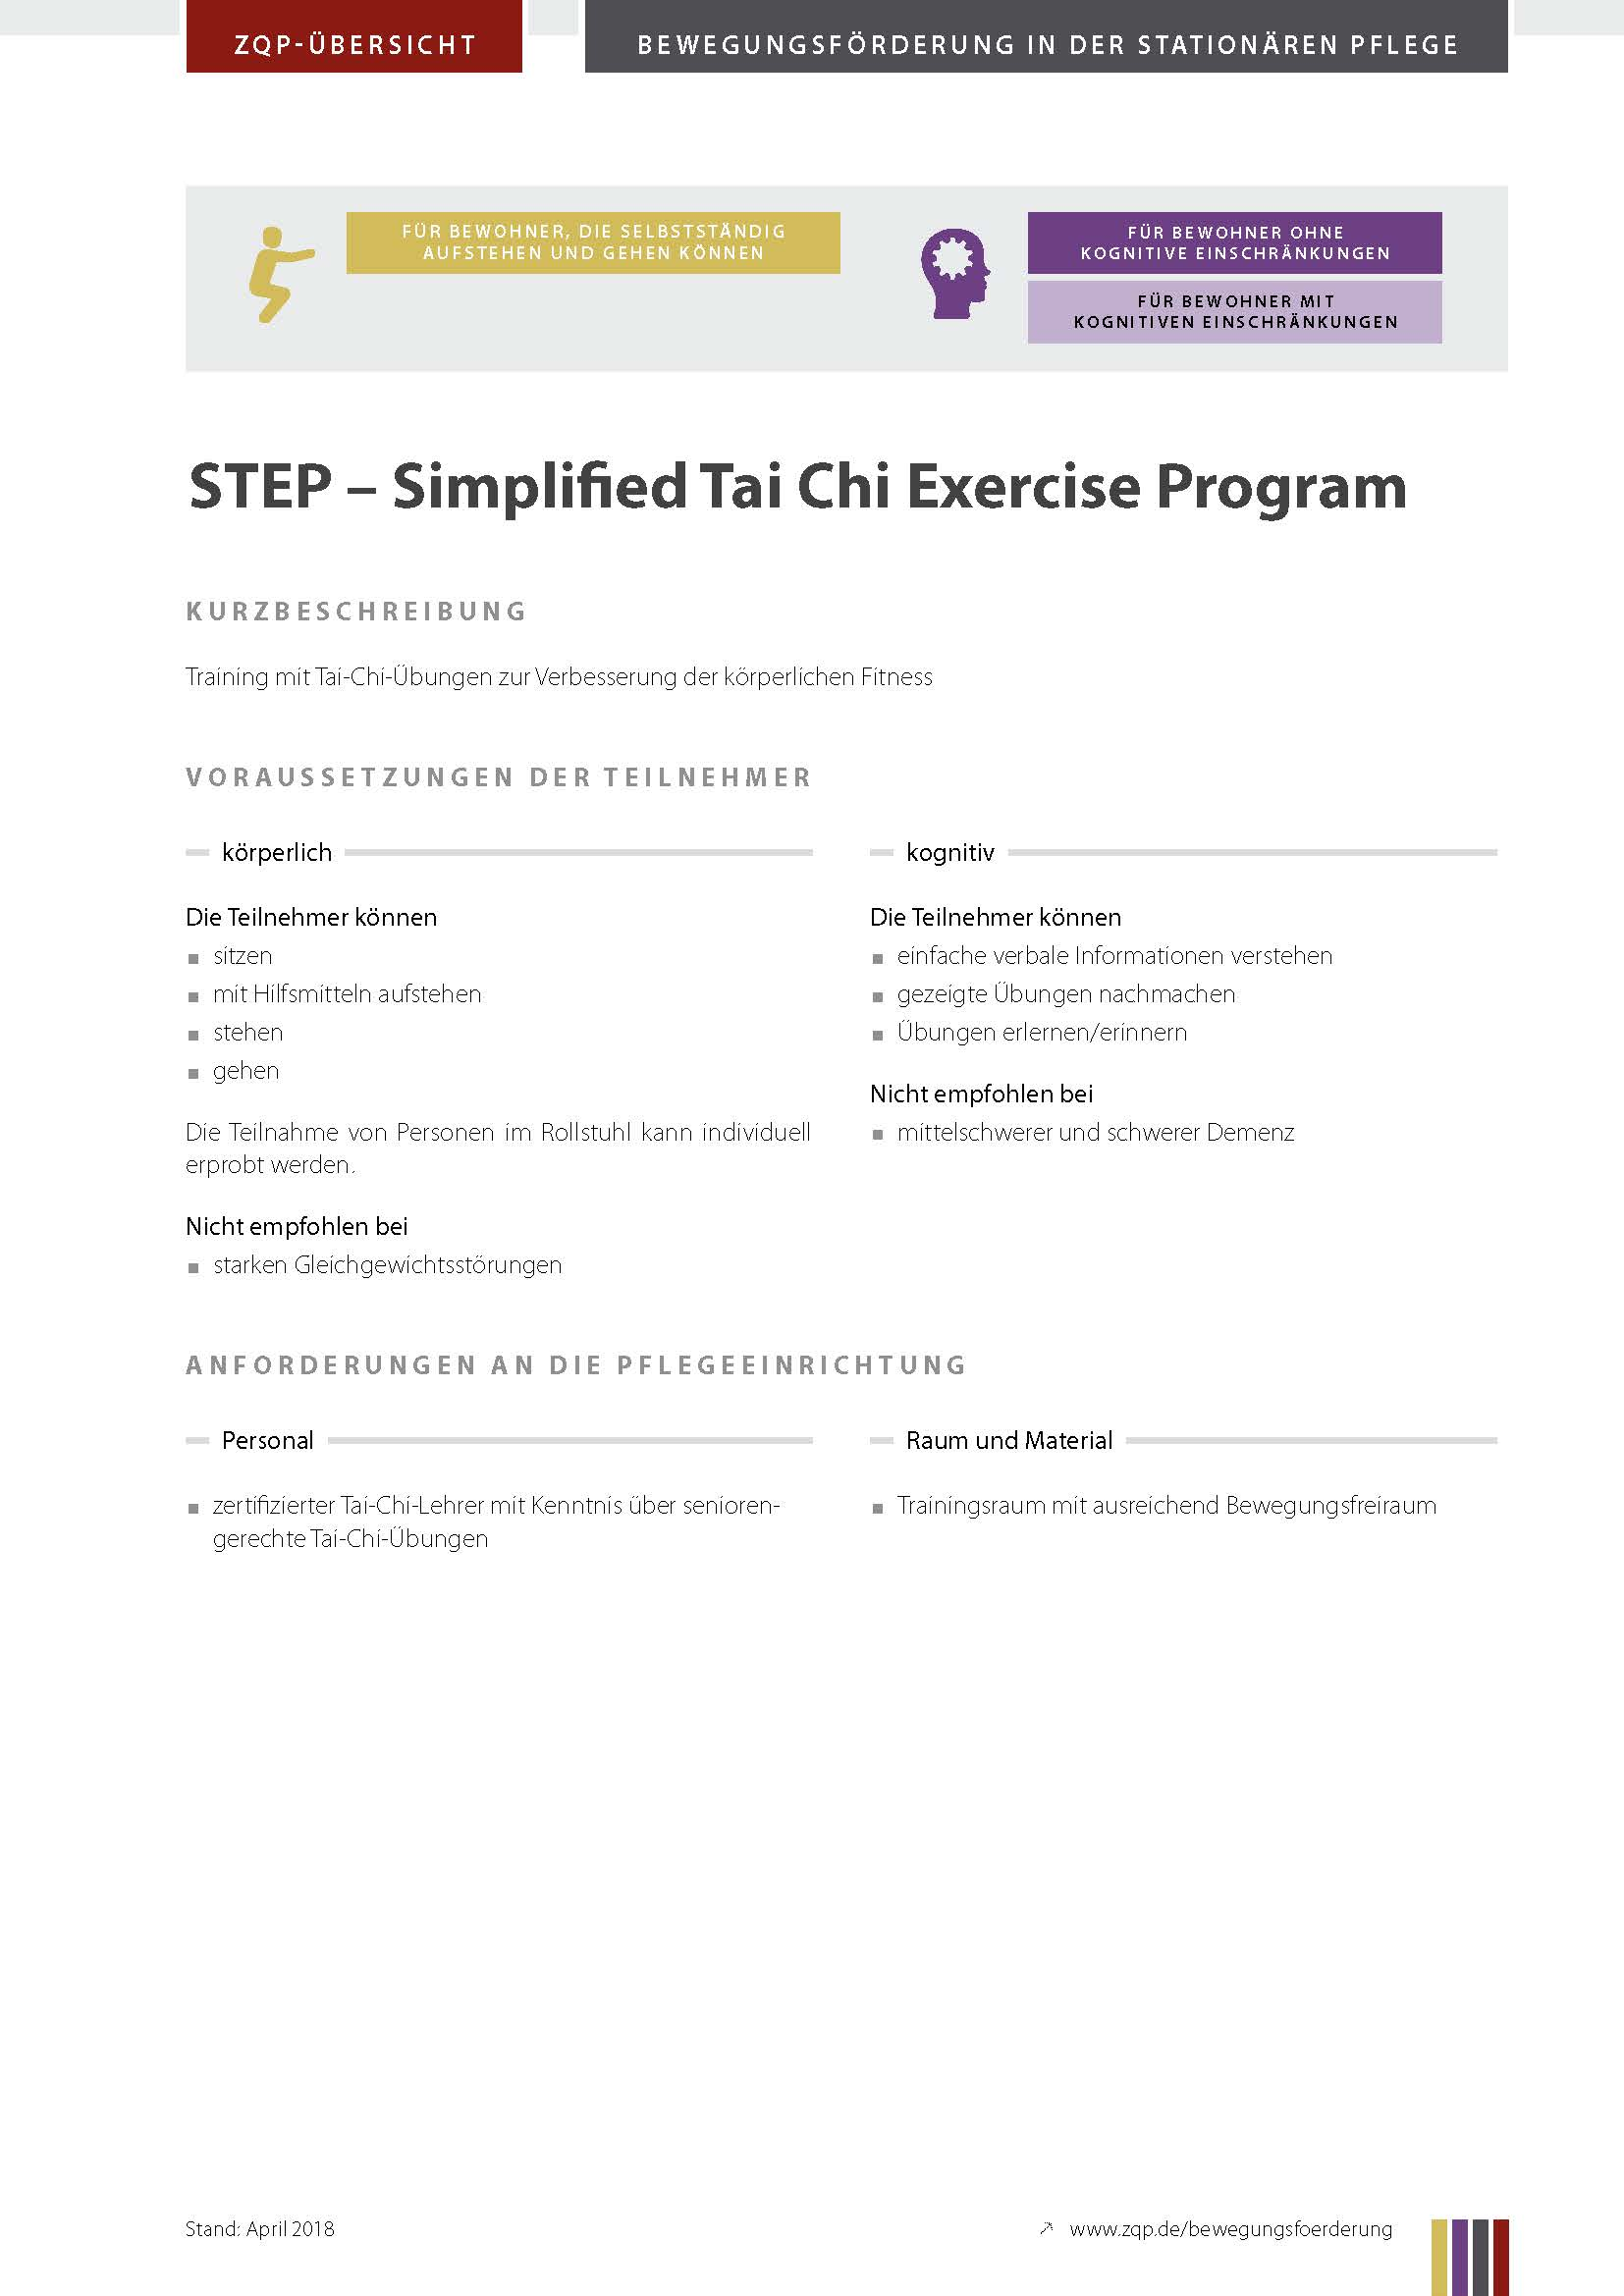 Titelblatt Simplified Tai Chi Exercise Program